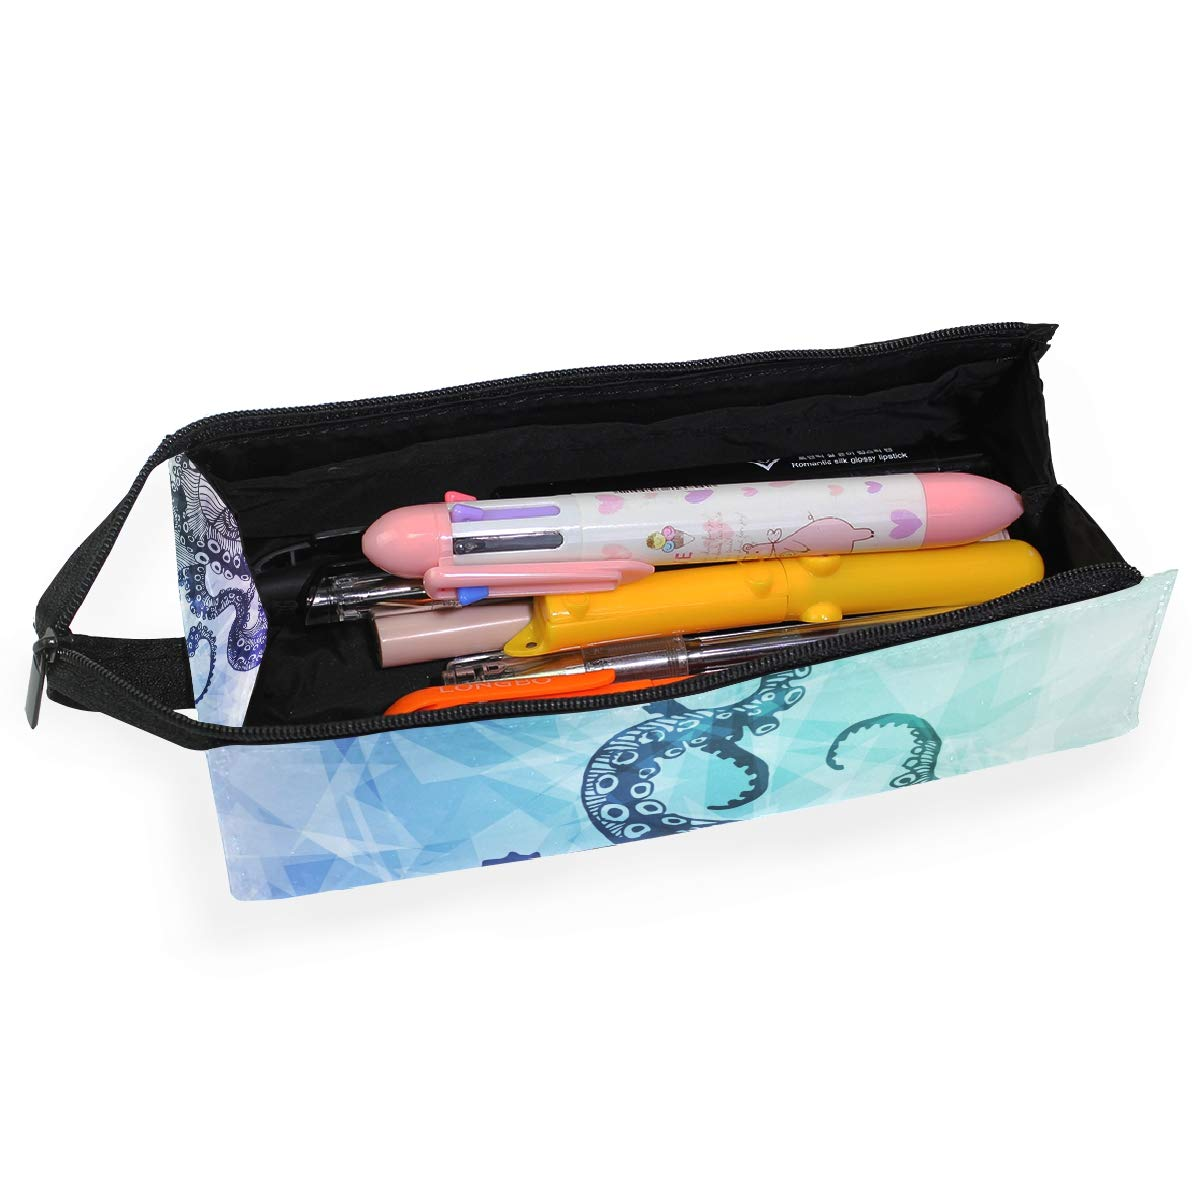 My Little Nest Eyeglass Sunglasses Holder Pouch Bag Abstract Modern Octopus Multi Function Zipper Pen Case Pencil Bag Organizer